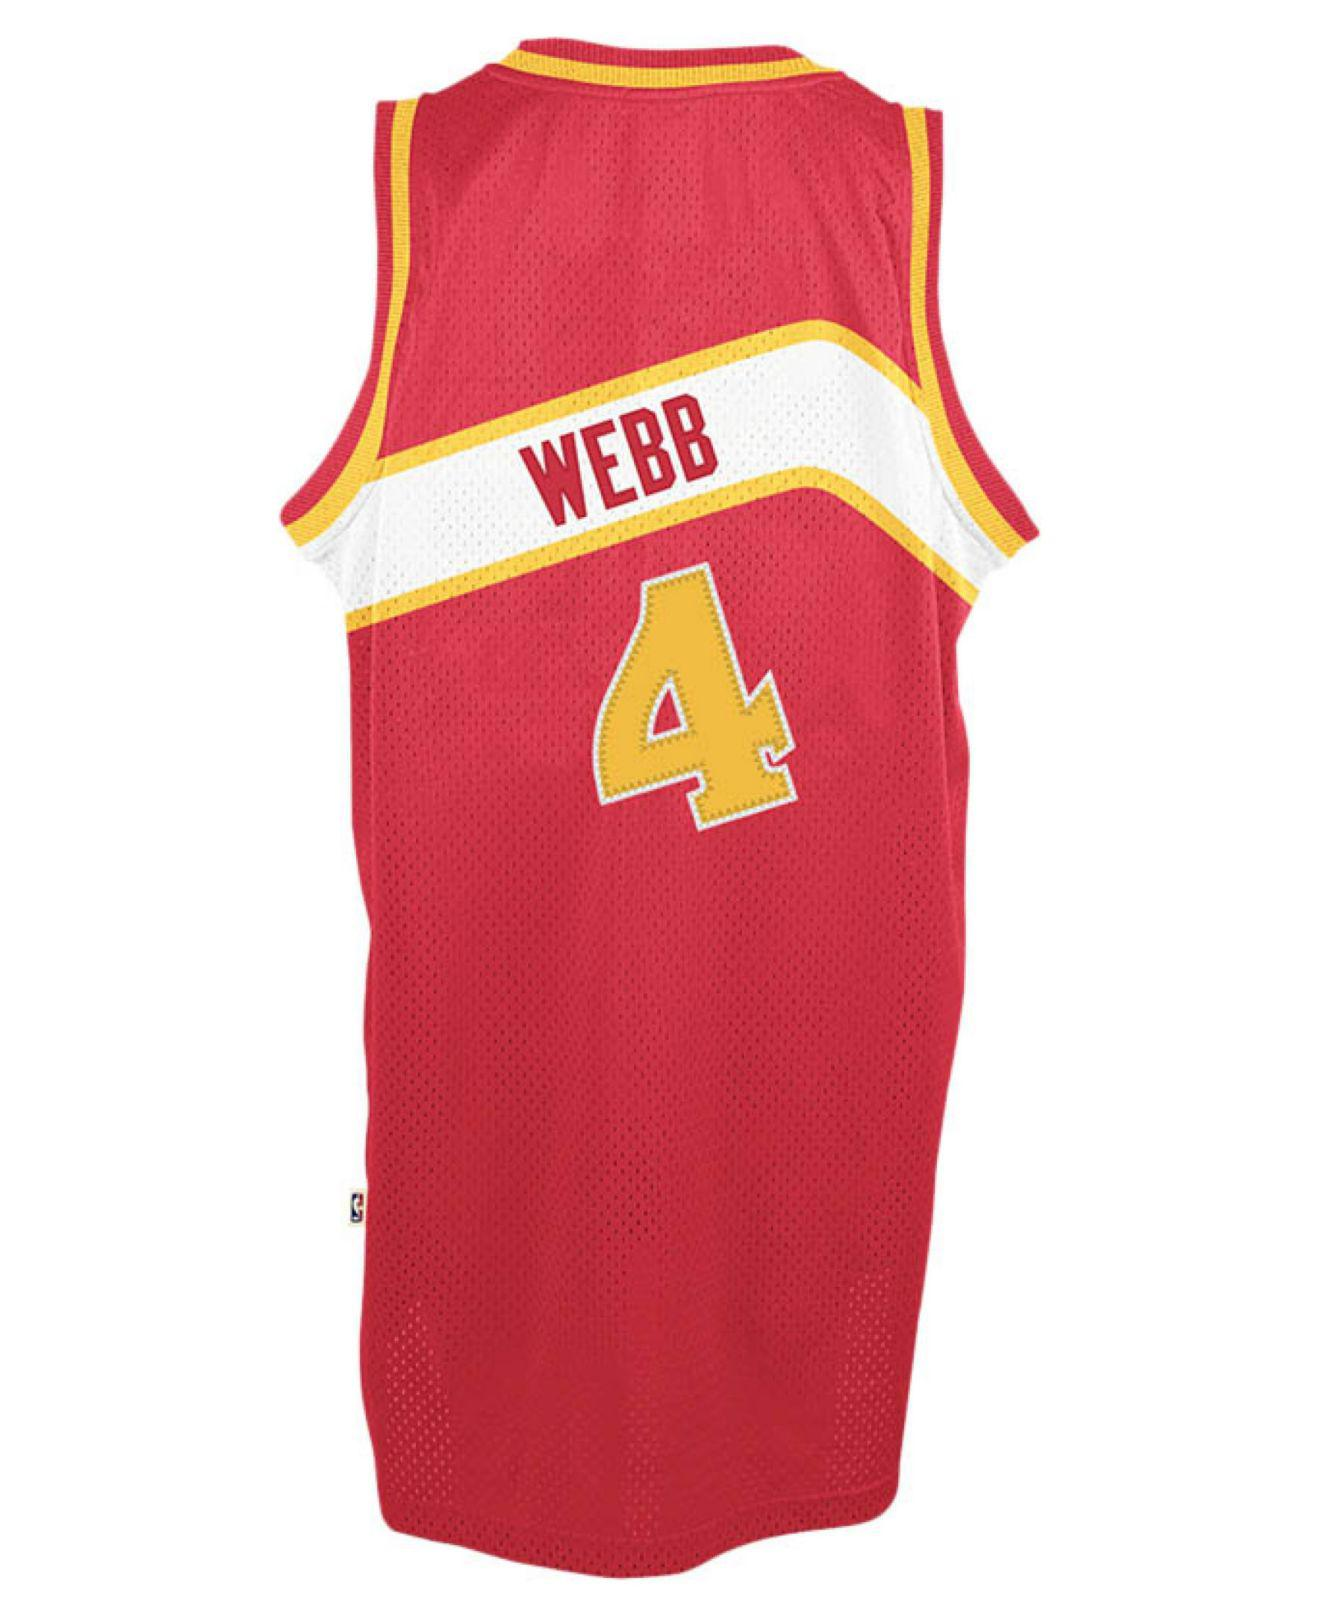 Lyst - Adidas Men s Spud Webb Atlanta Hawks Retired Player Swingman ... 54394317c